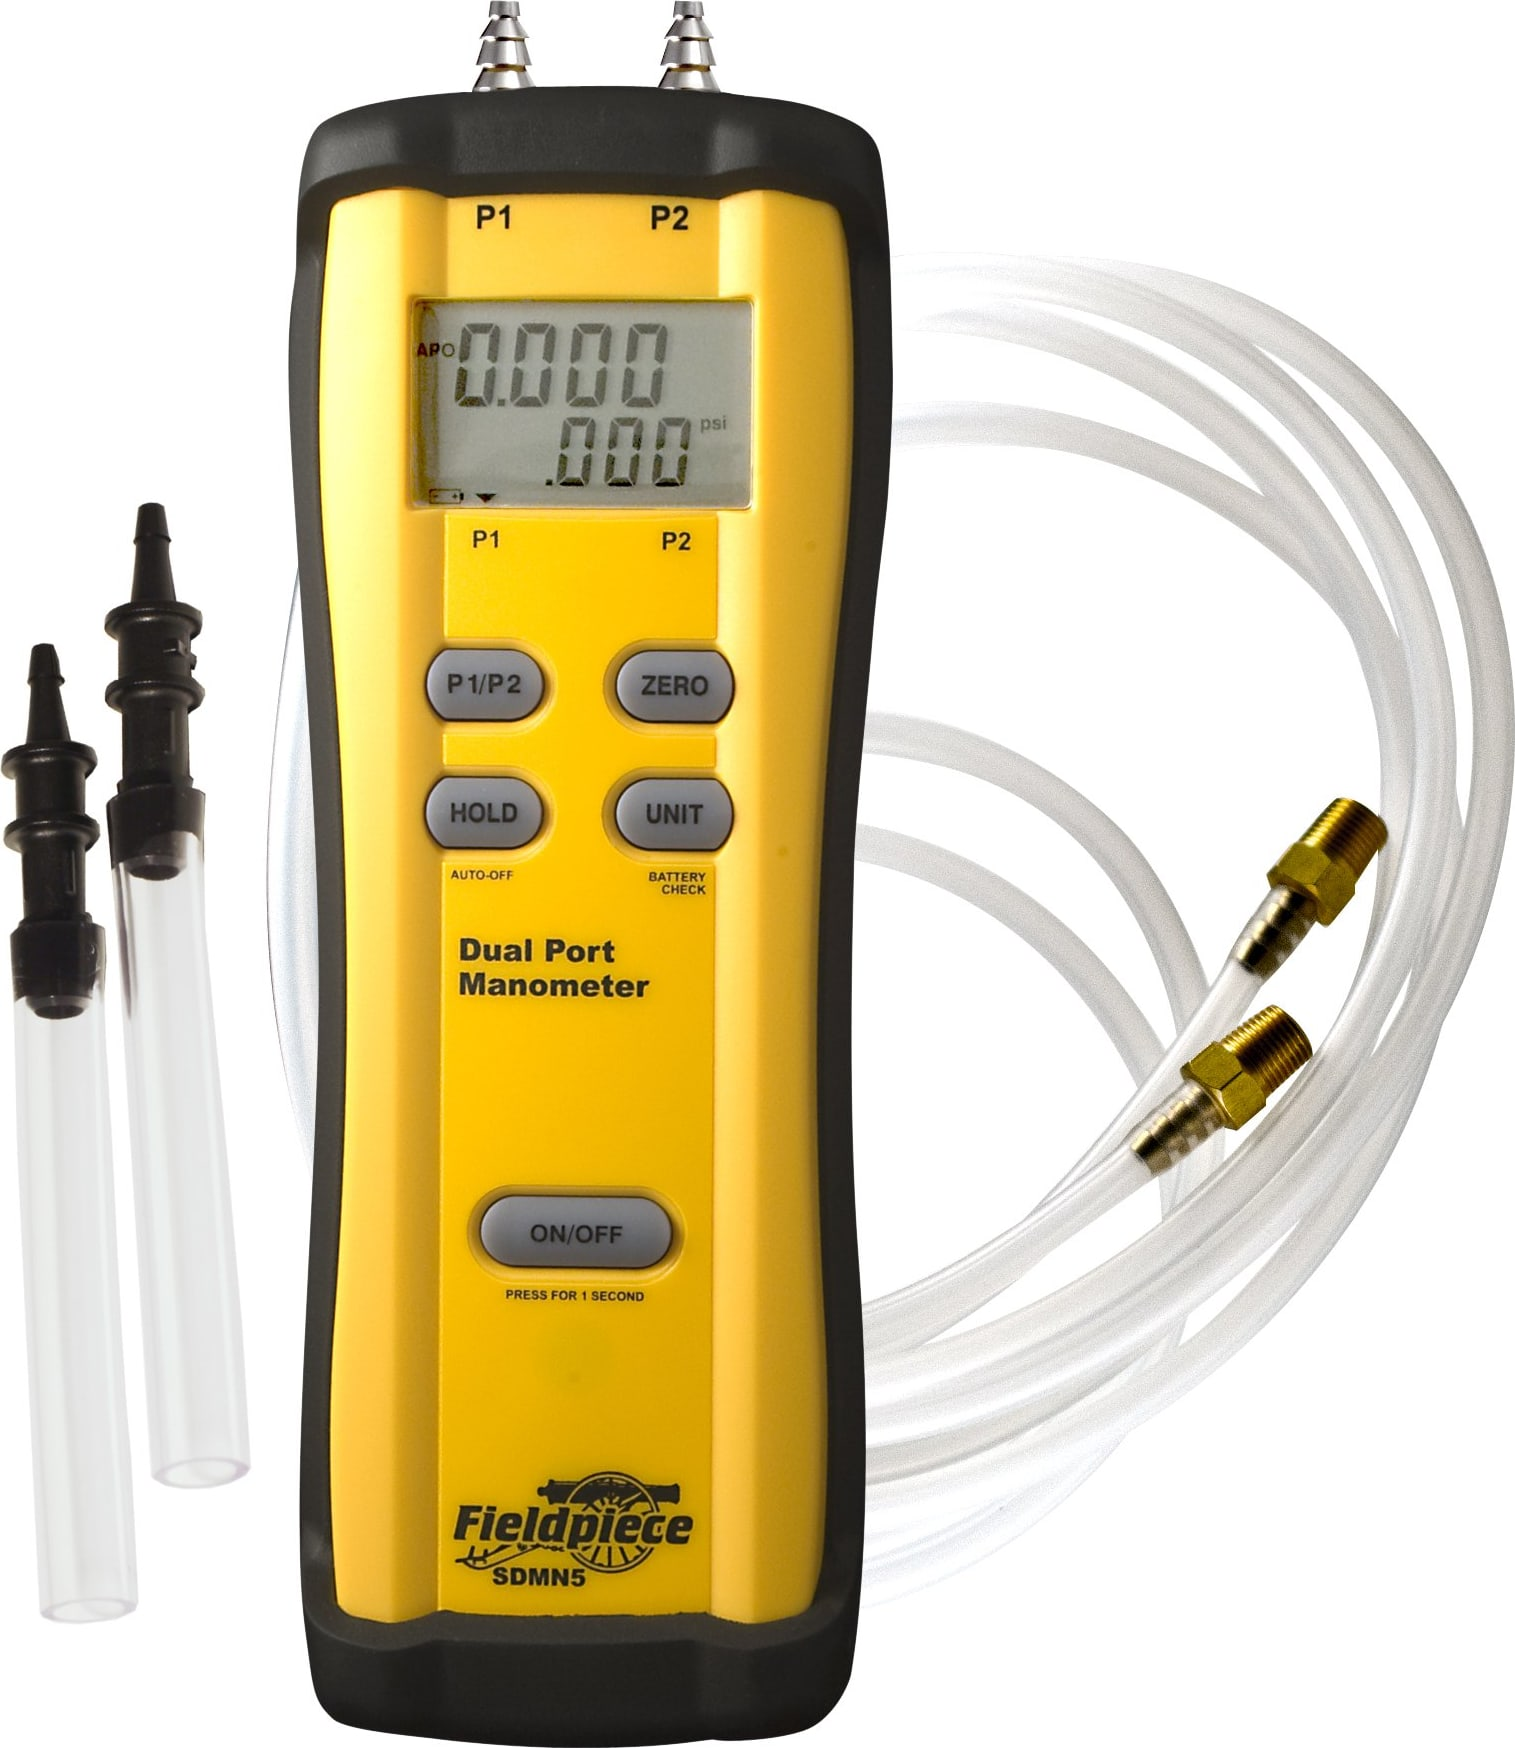 Fieldpiece SDMN5 Differential Pressure Manometer [Free 2nd Day Shipping]